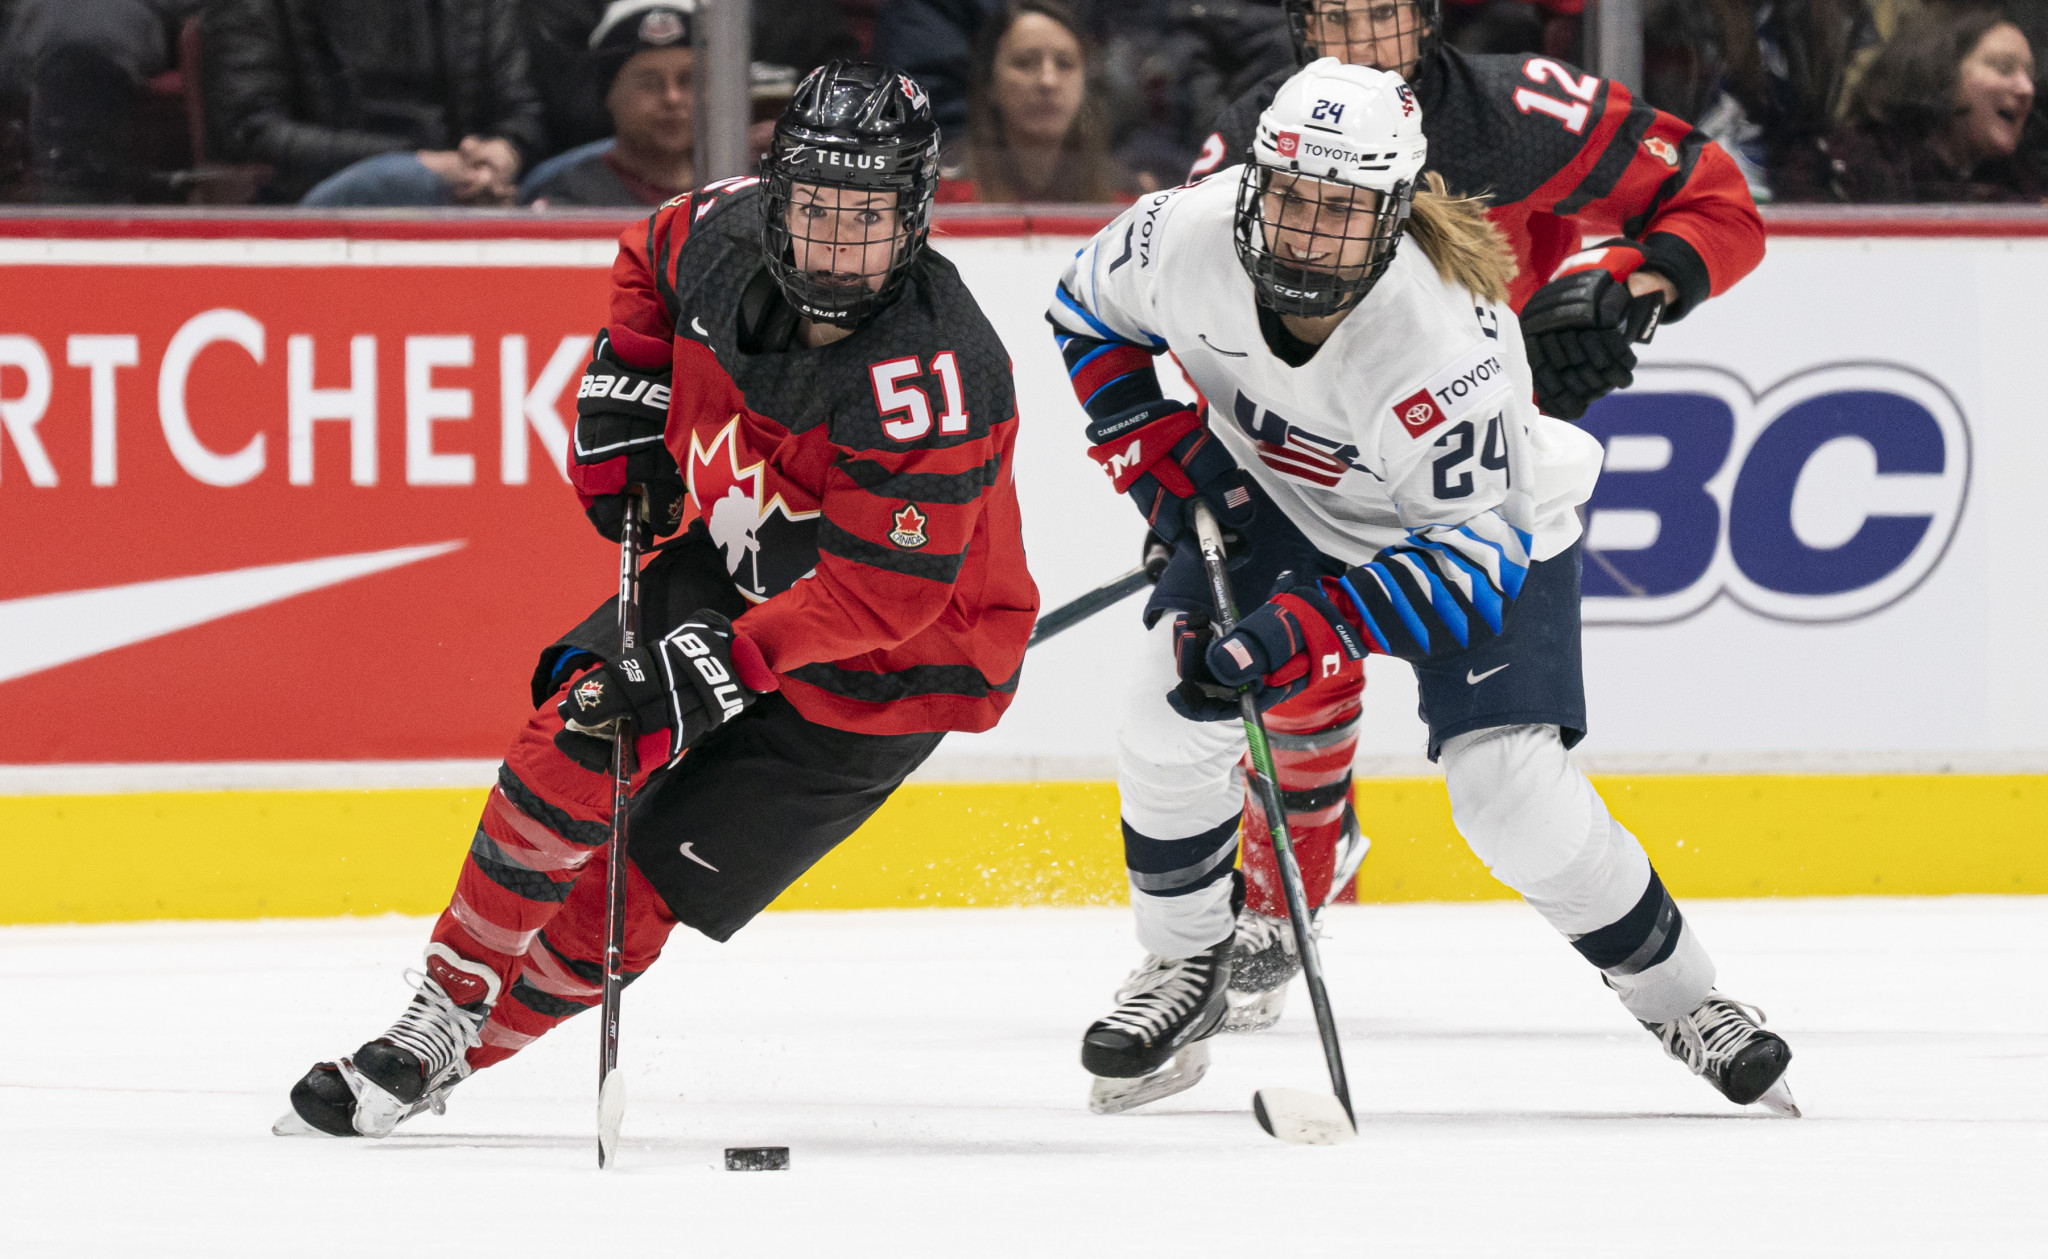 The IIHF and Hockey Canada are set to work together to find a new venue for the Women's World Championship ©Getty Images